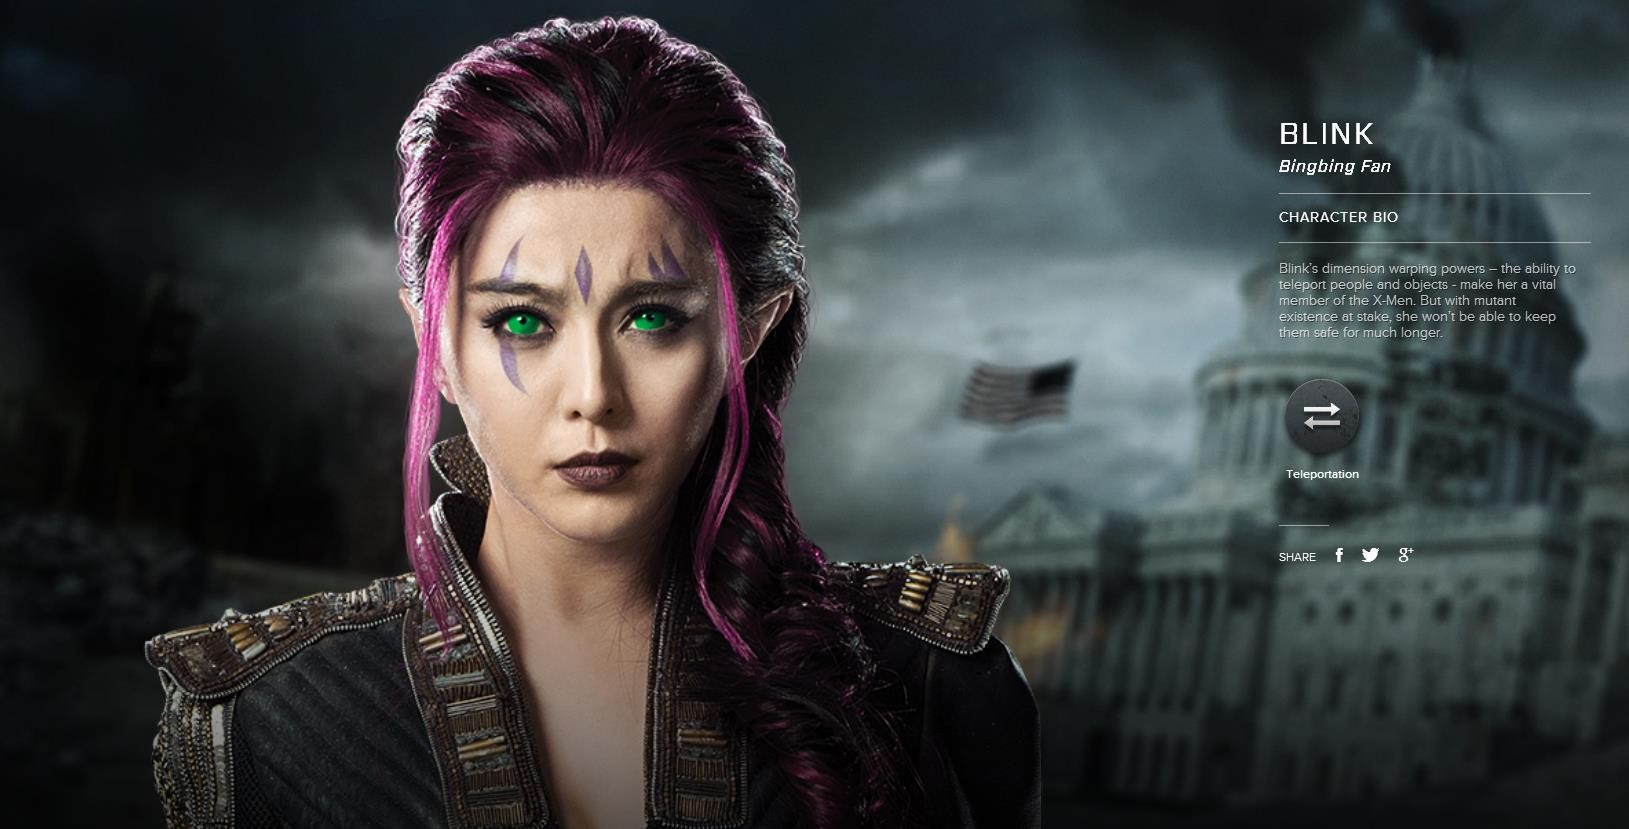 X Men Blink Bingbing